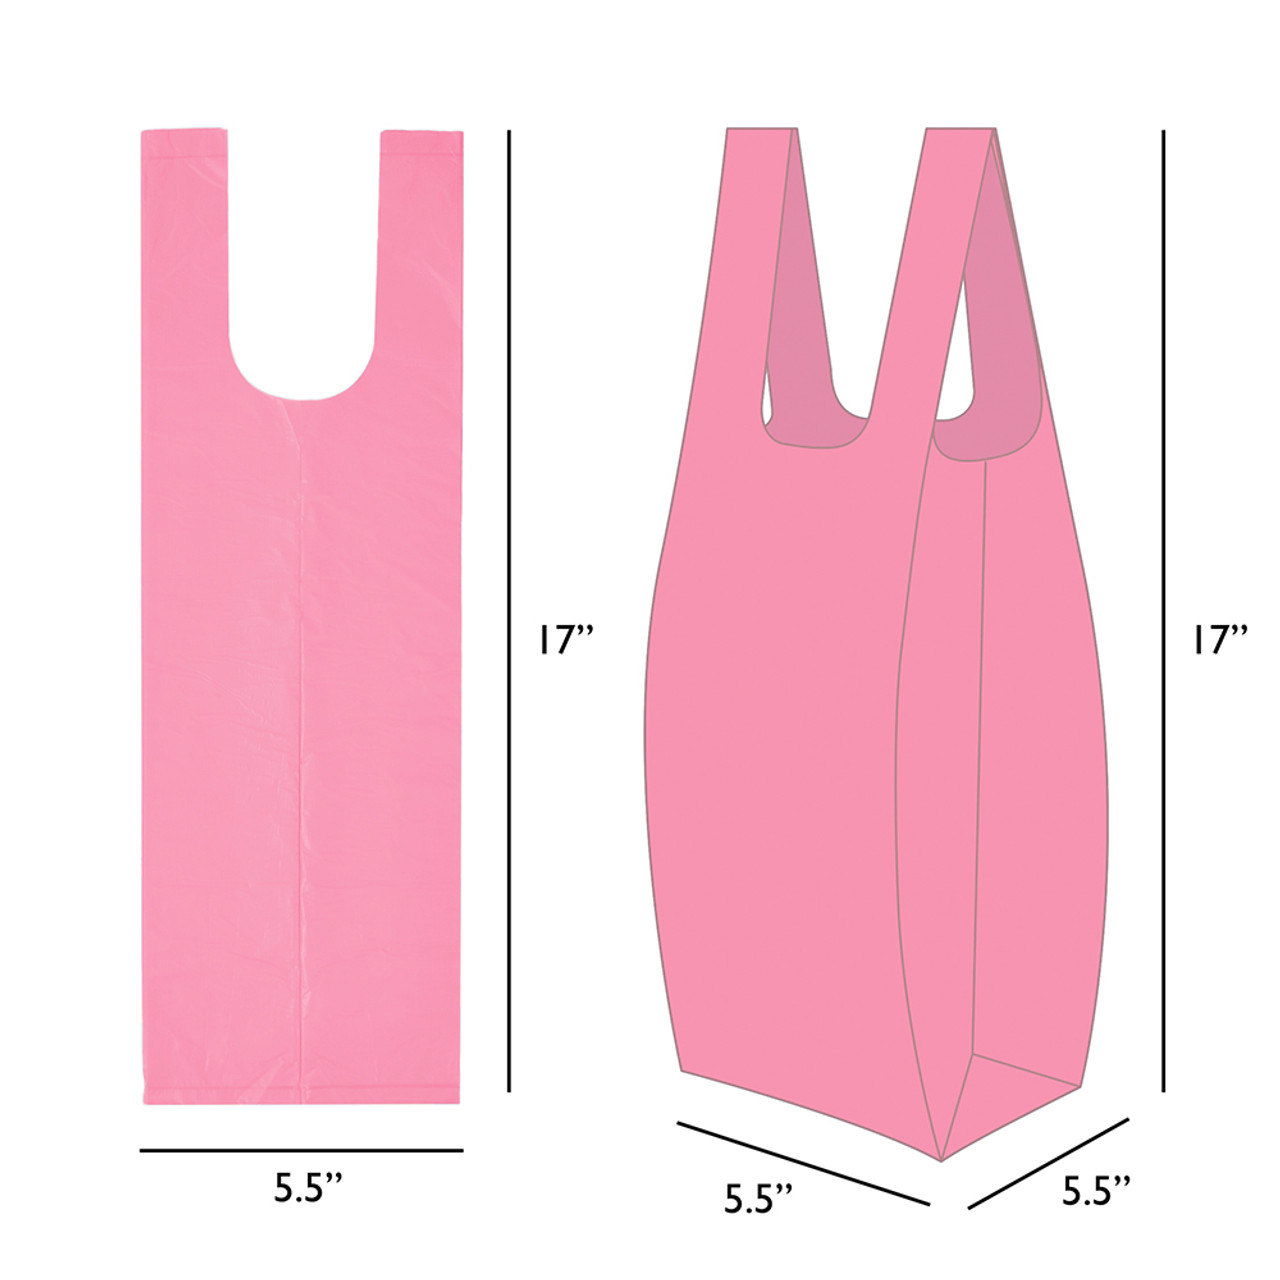 Poo Smart Dog Waste Disposal Bags with Tie Handles